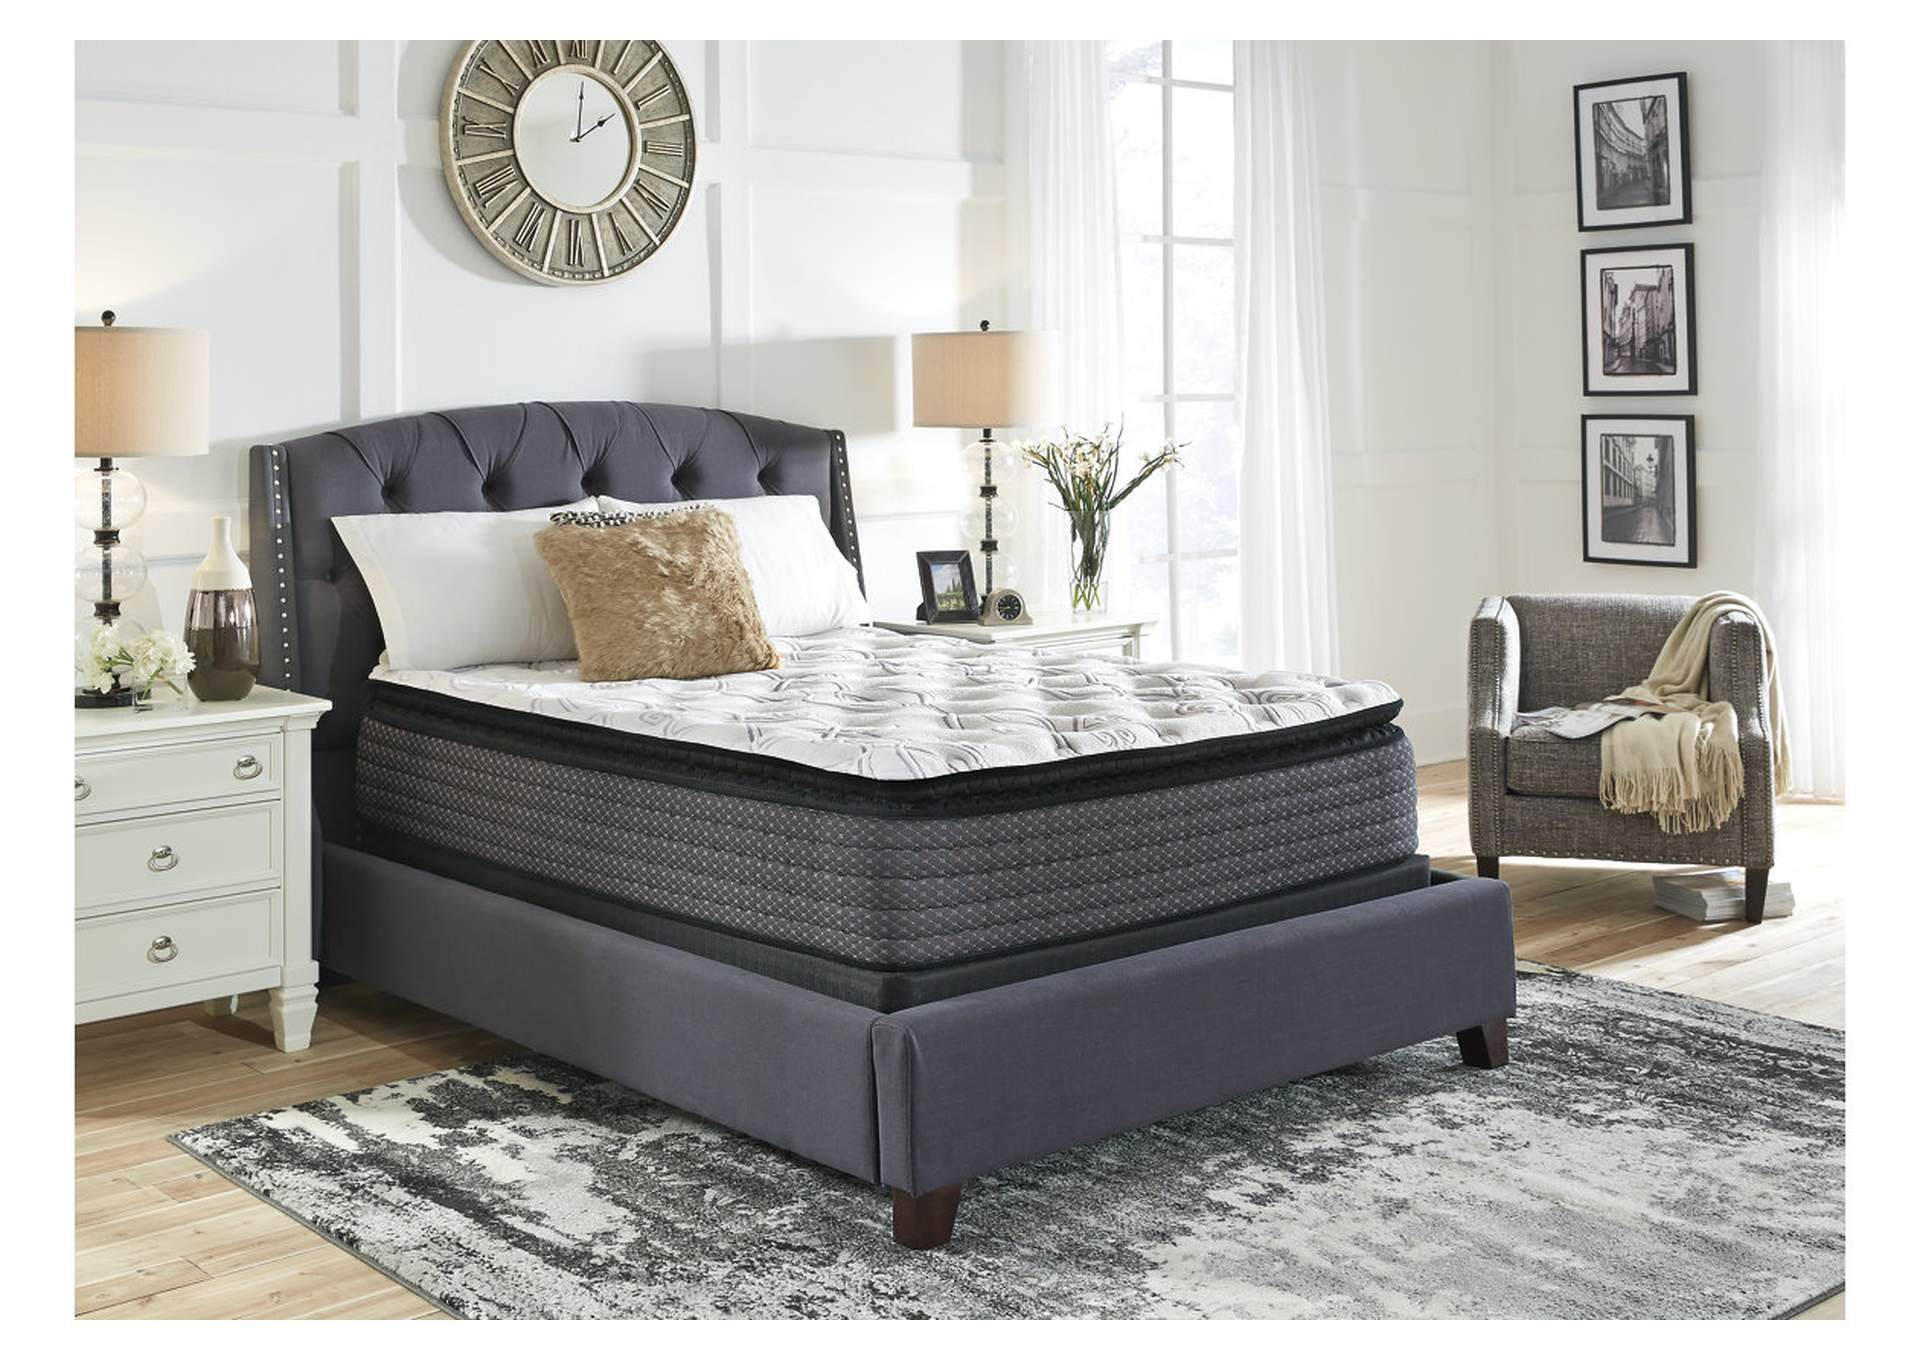 Limited Edition White Pillowtop Twin Mattress,Sierra Sleep by Ashley